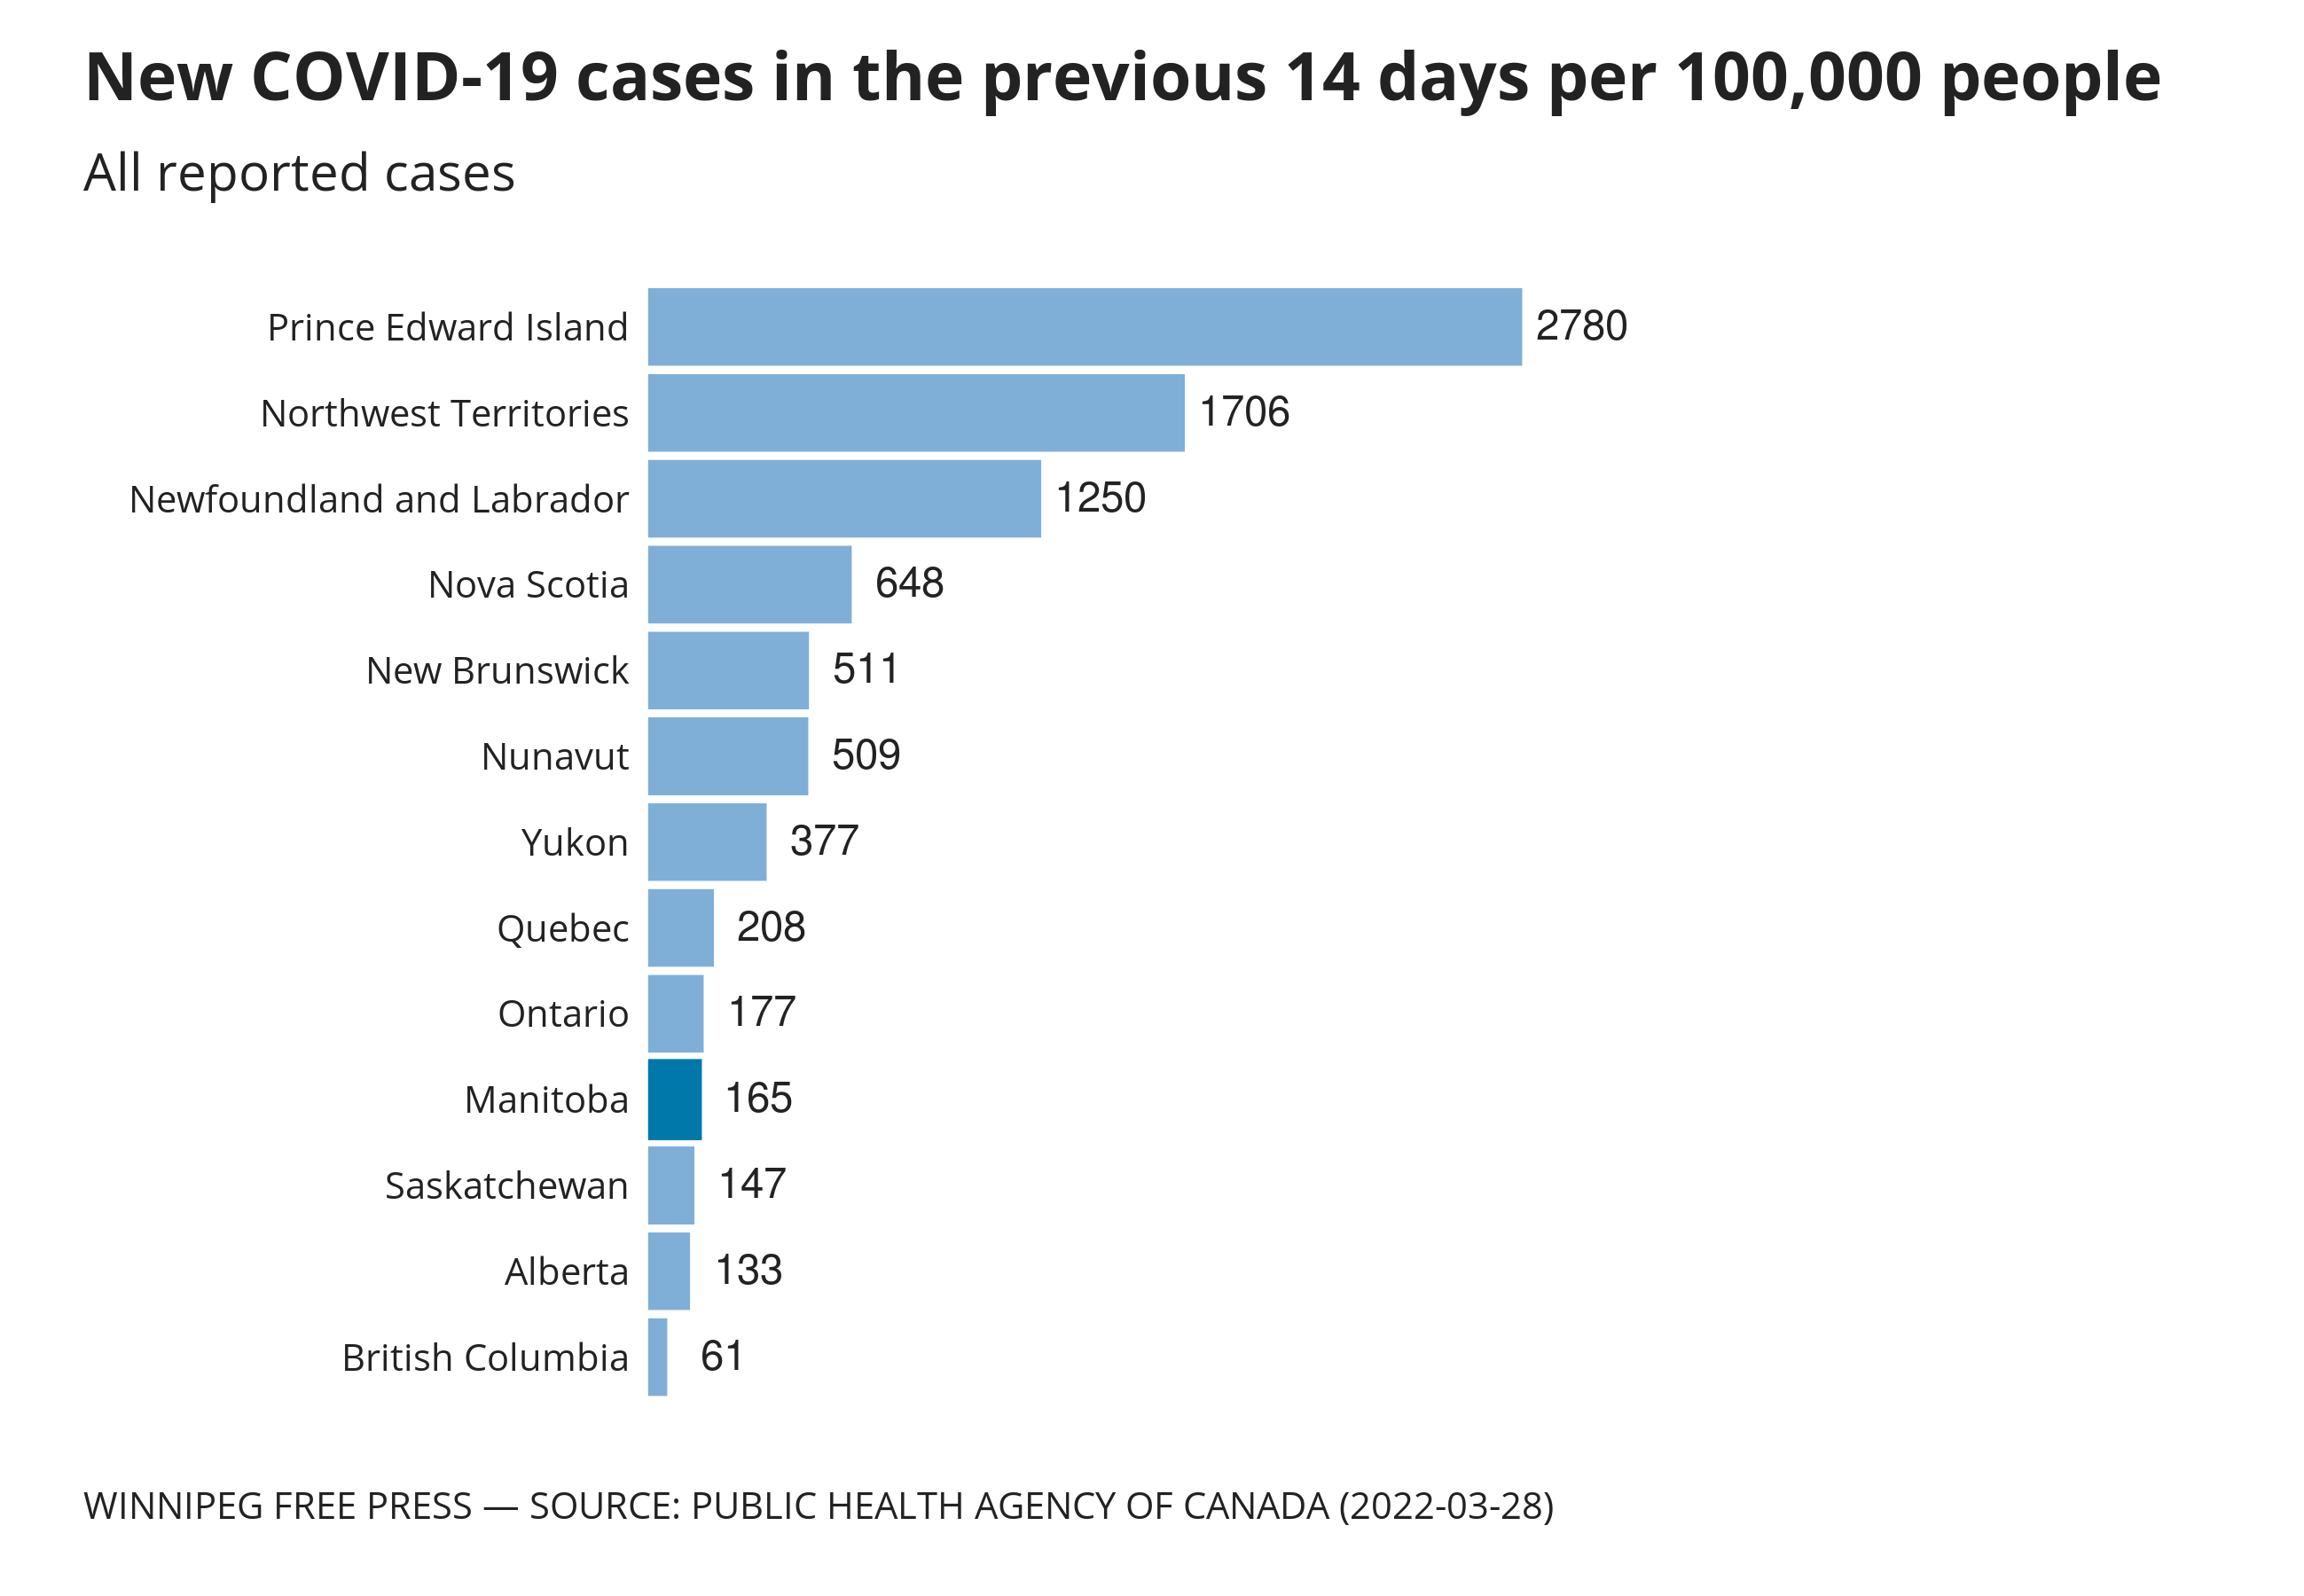 Chart showing rate of new cases in the previous 14 days per 100,000 people.